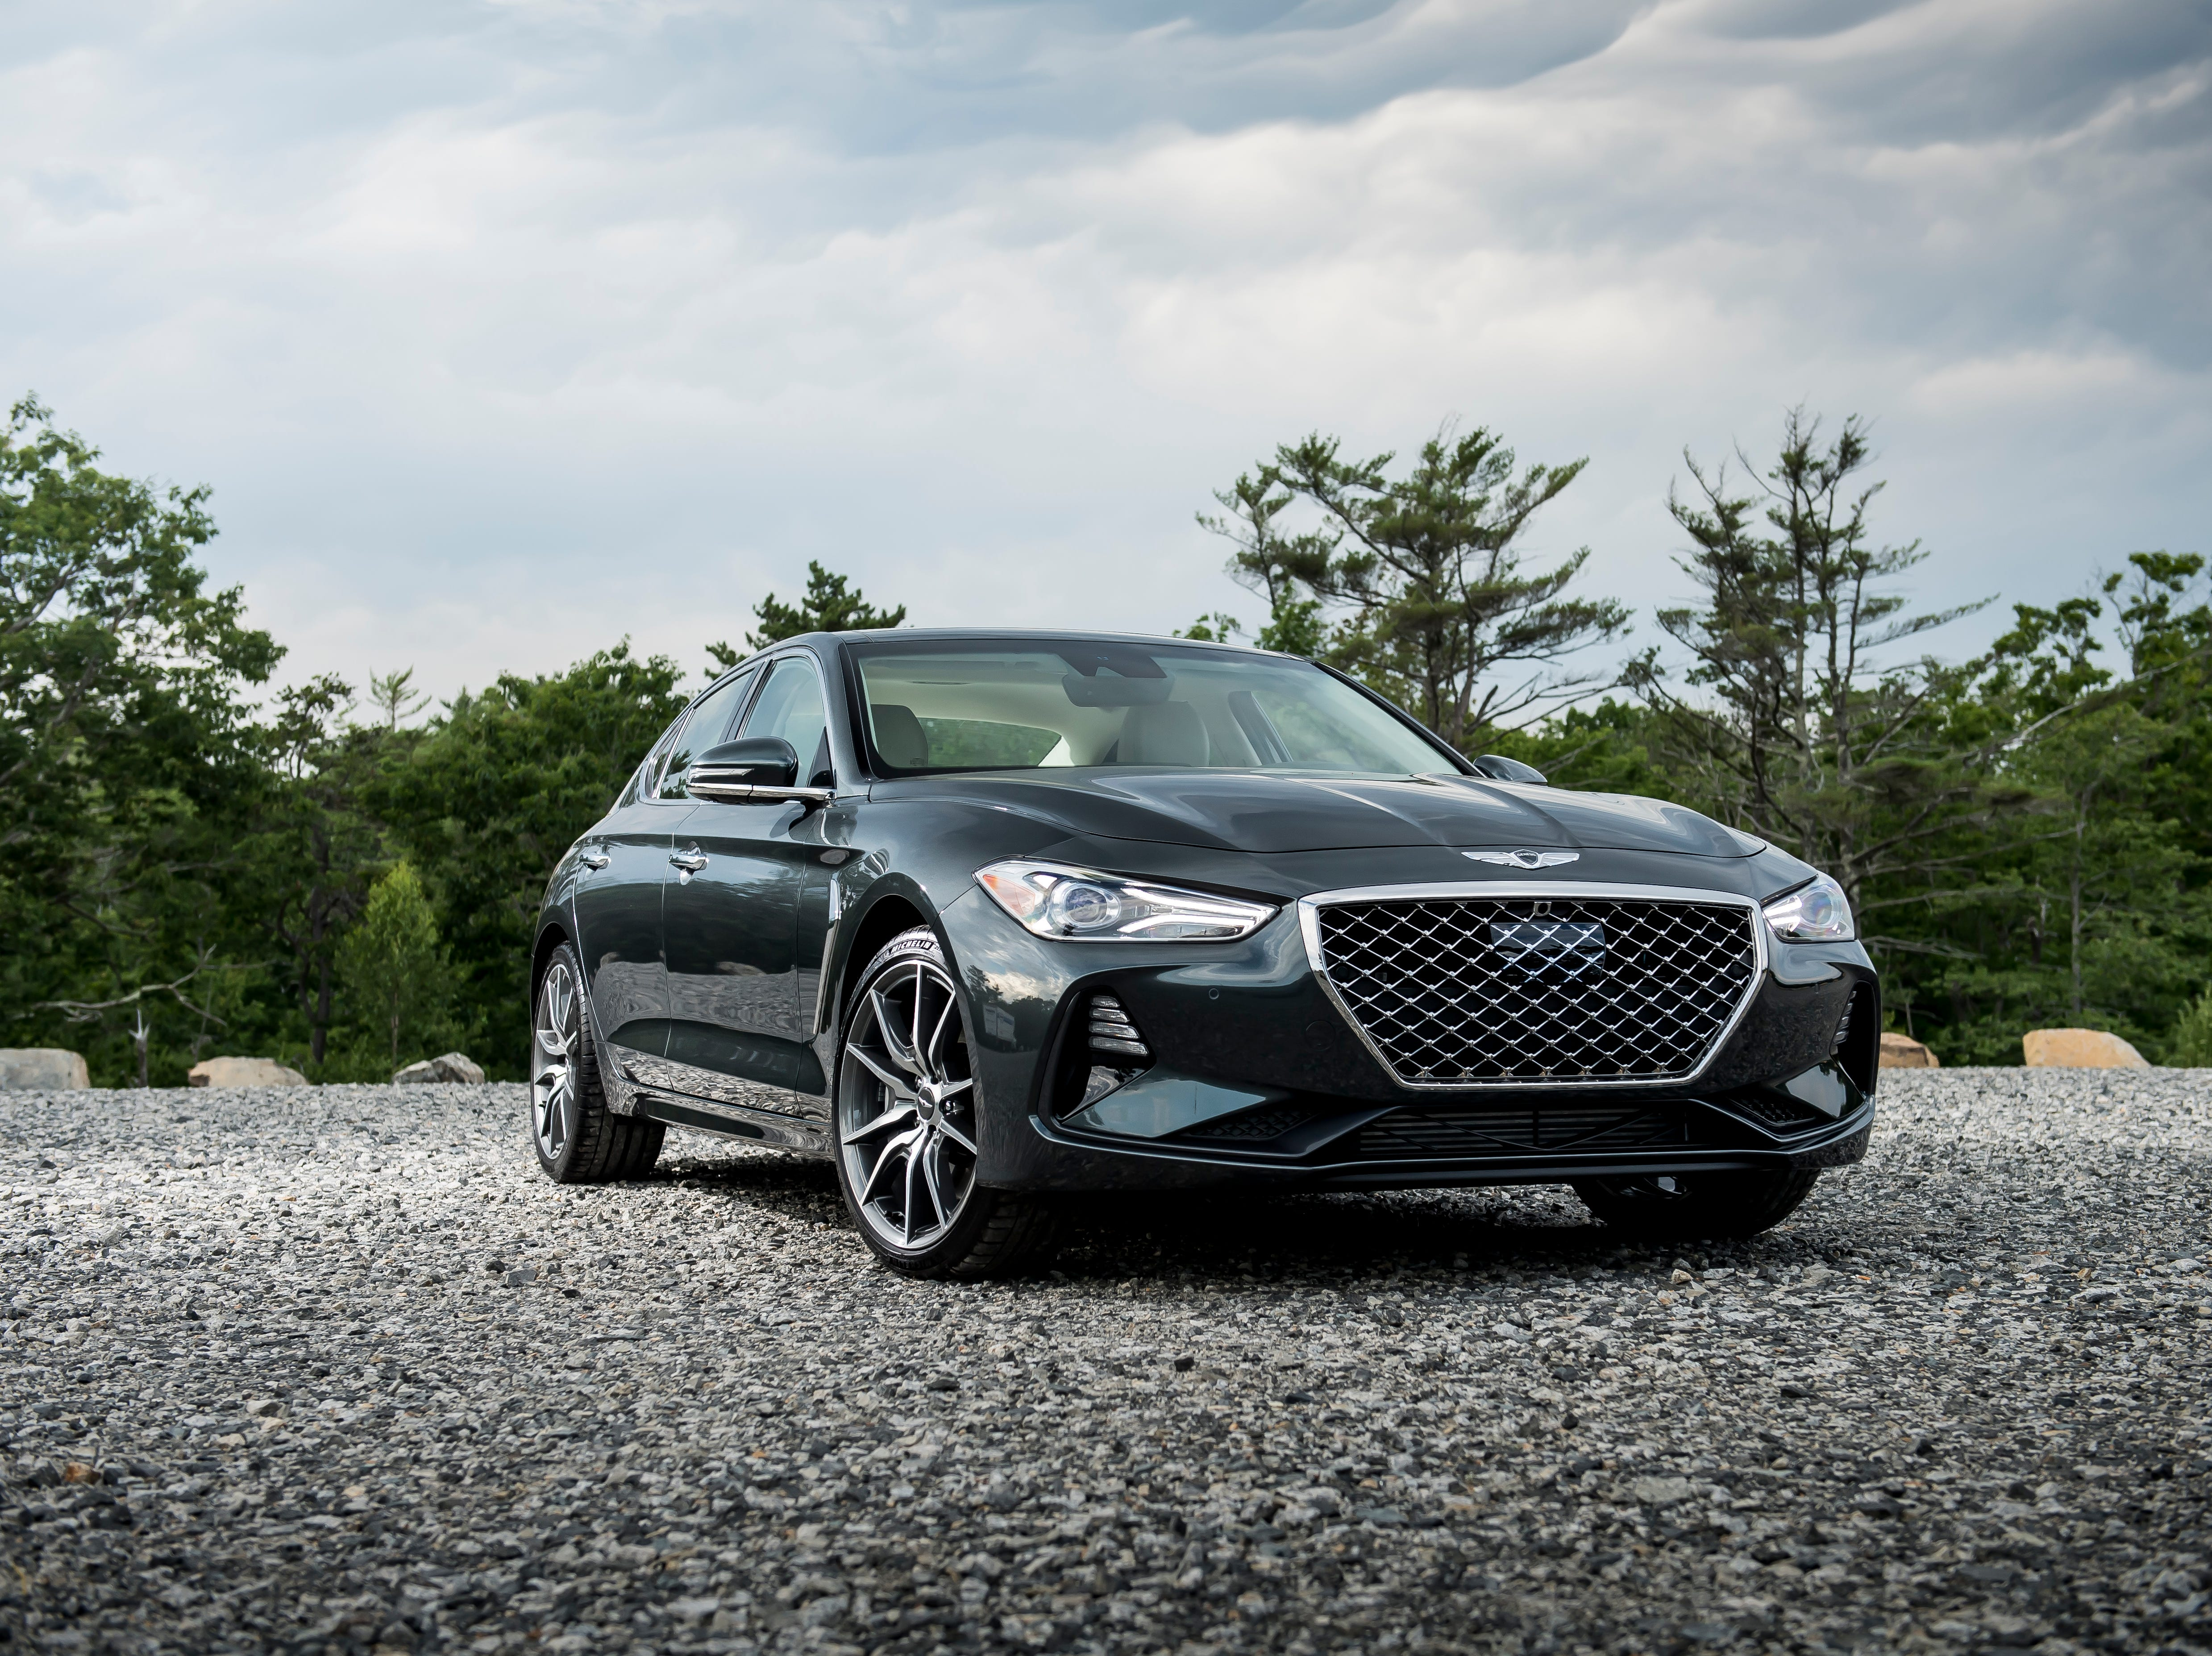 2019 Genesis G70 is a sophisticated performer